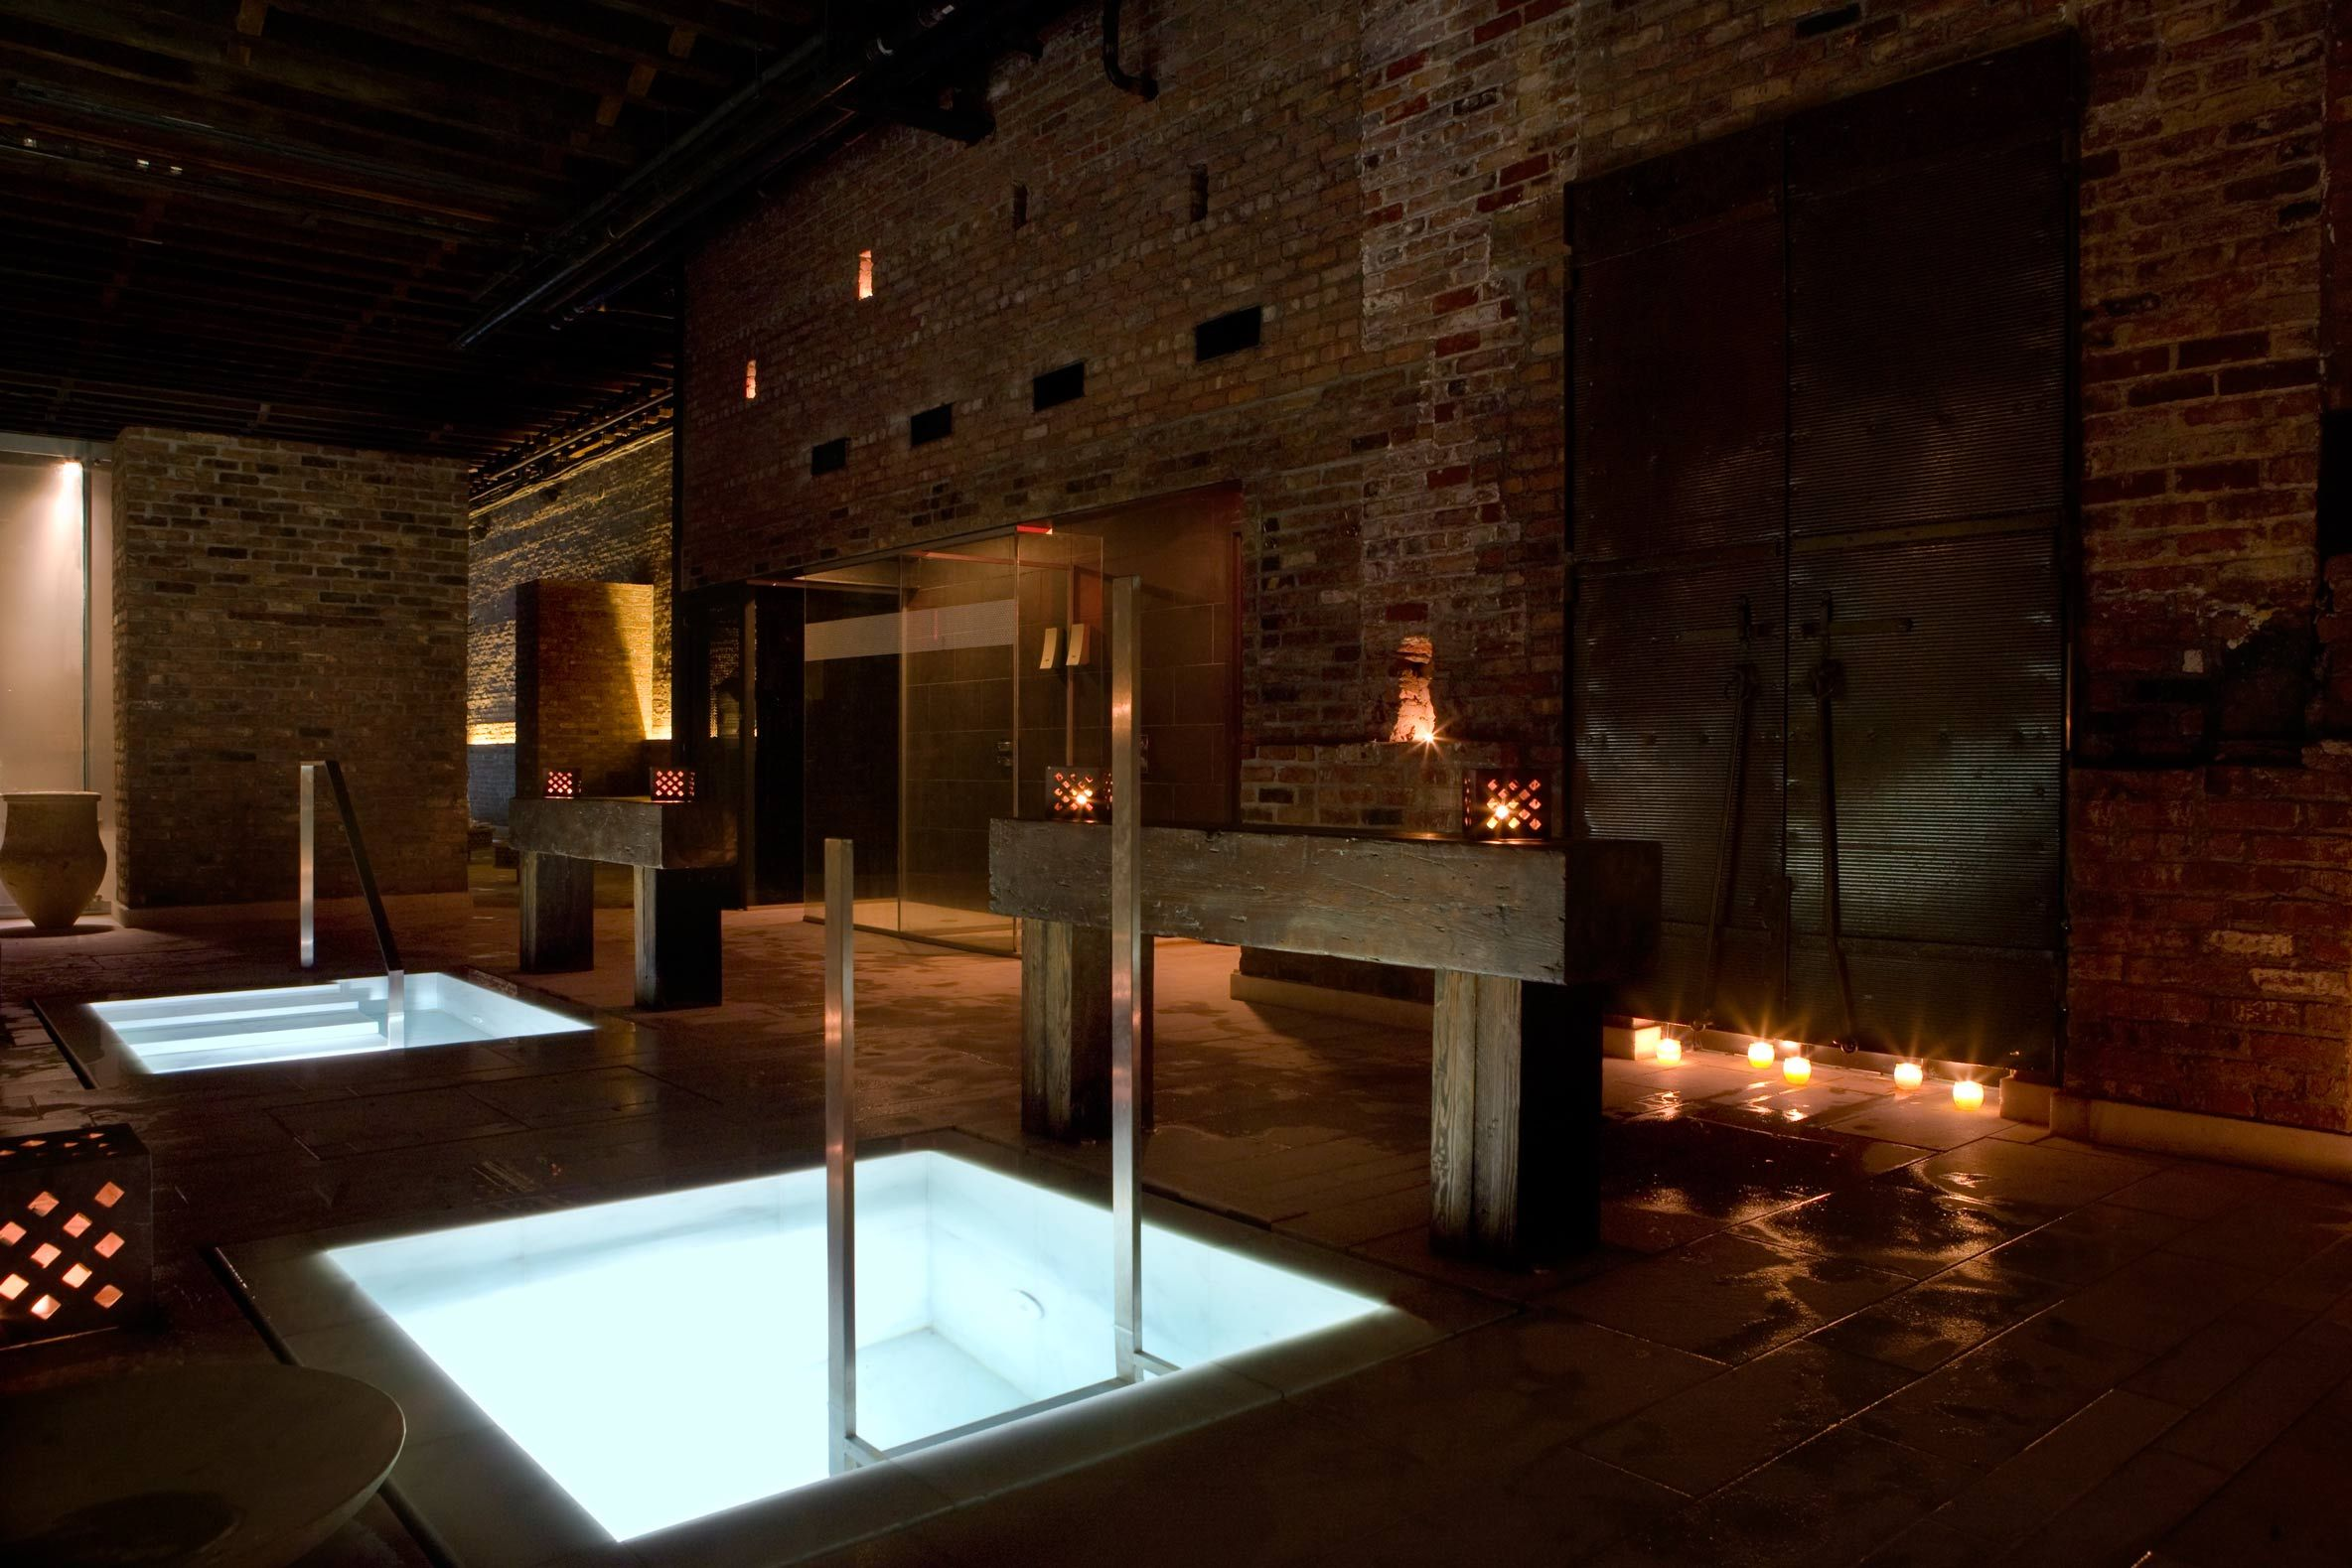 The Aire Ancient Bath Experience